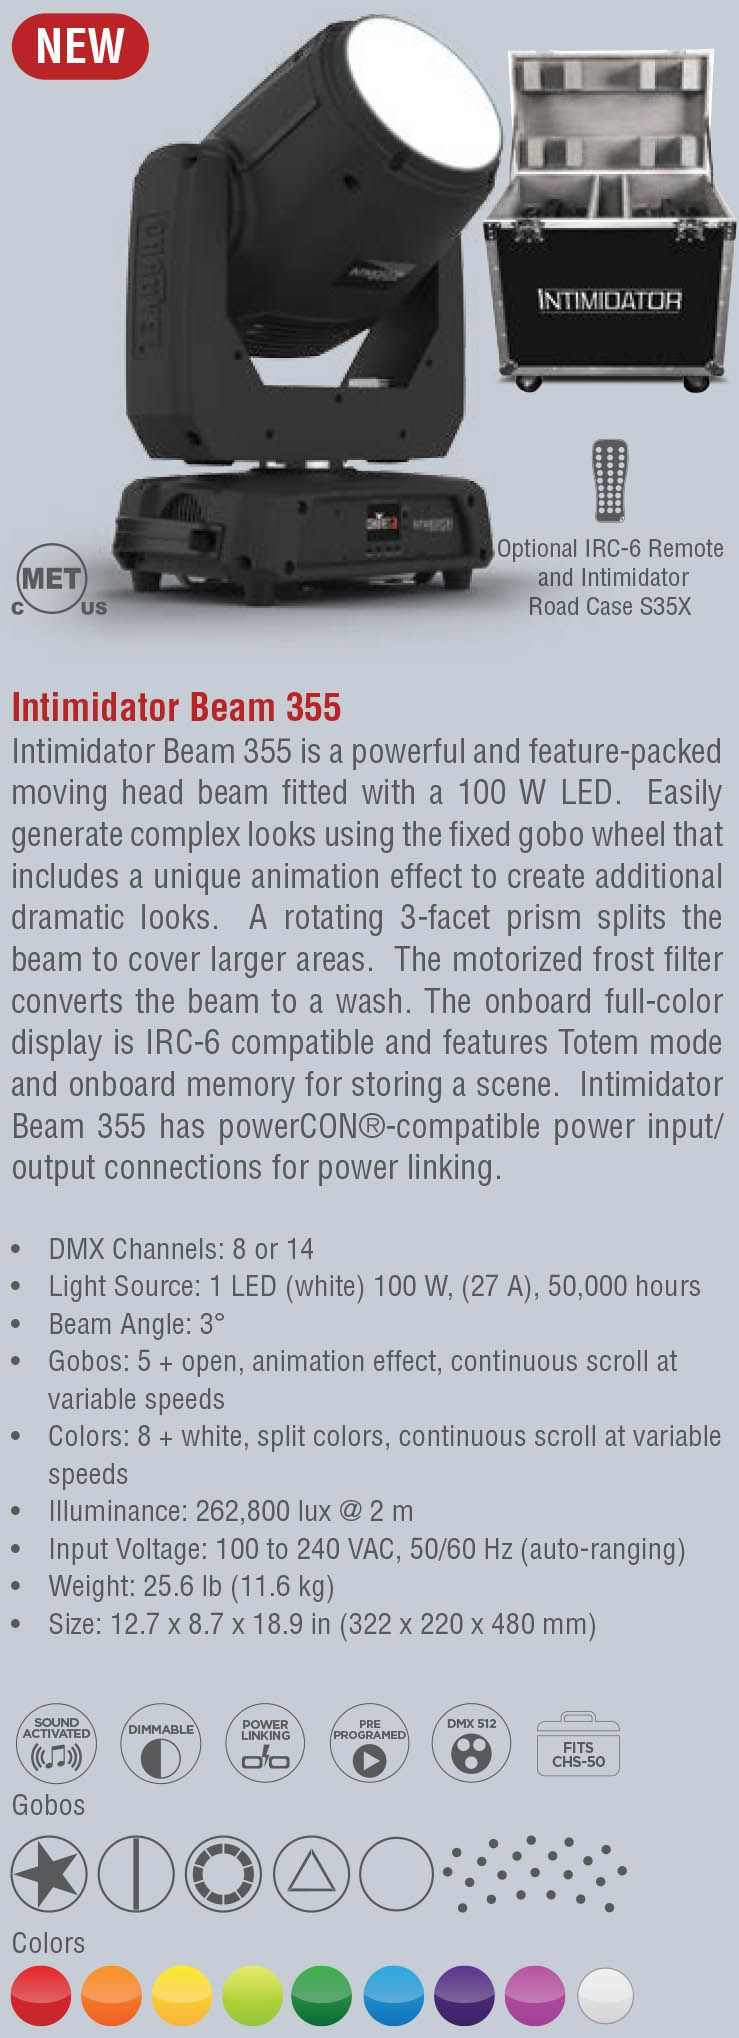 Intimidator Beam 355